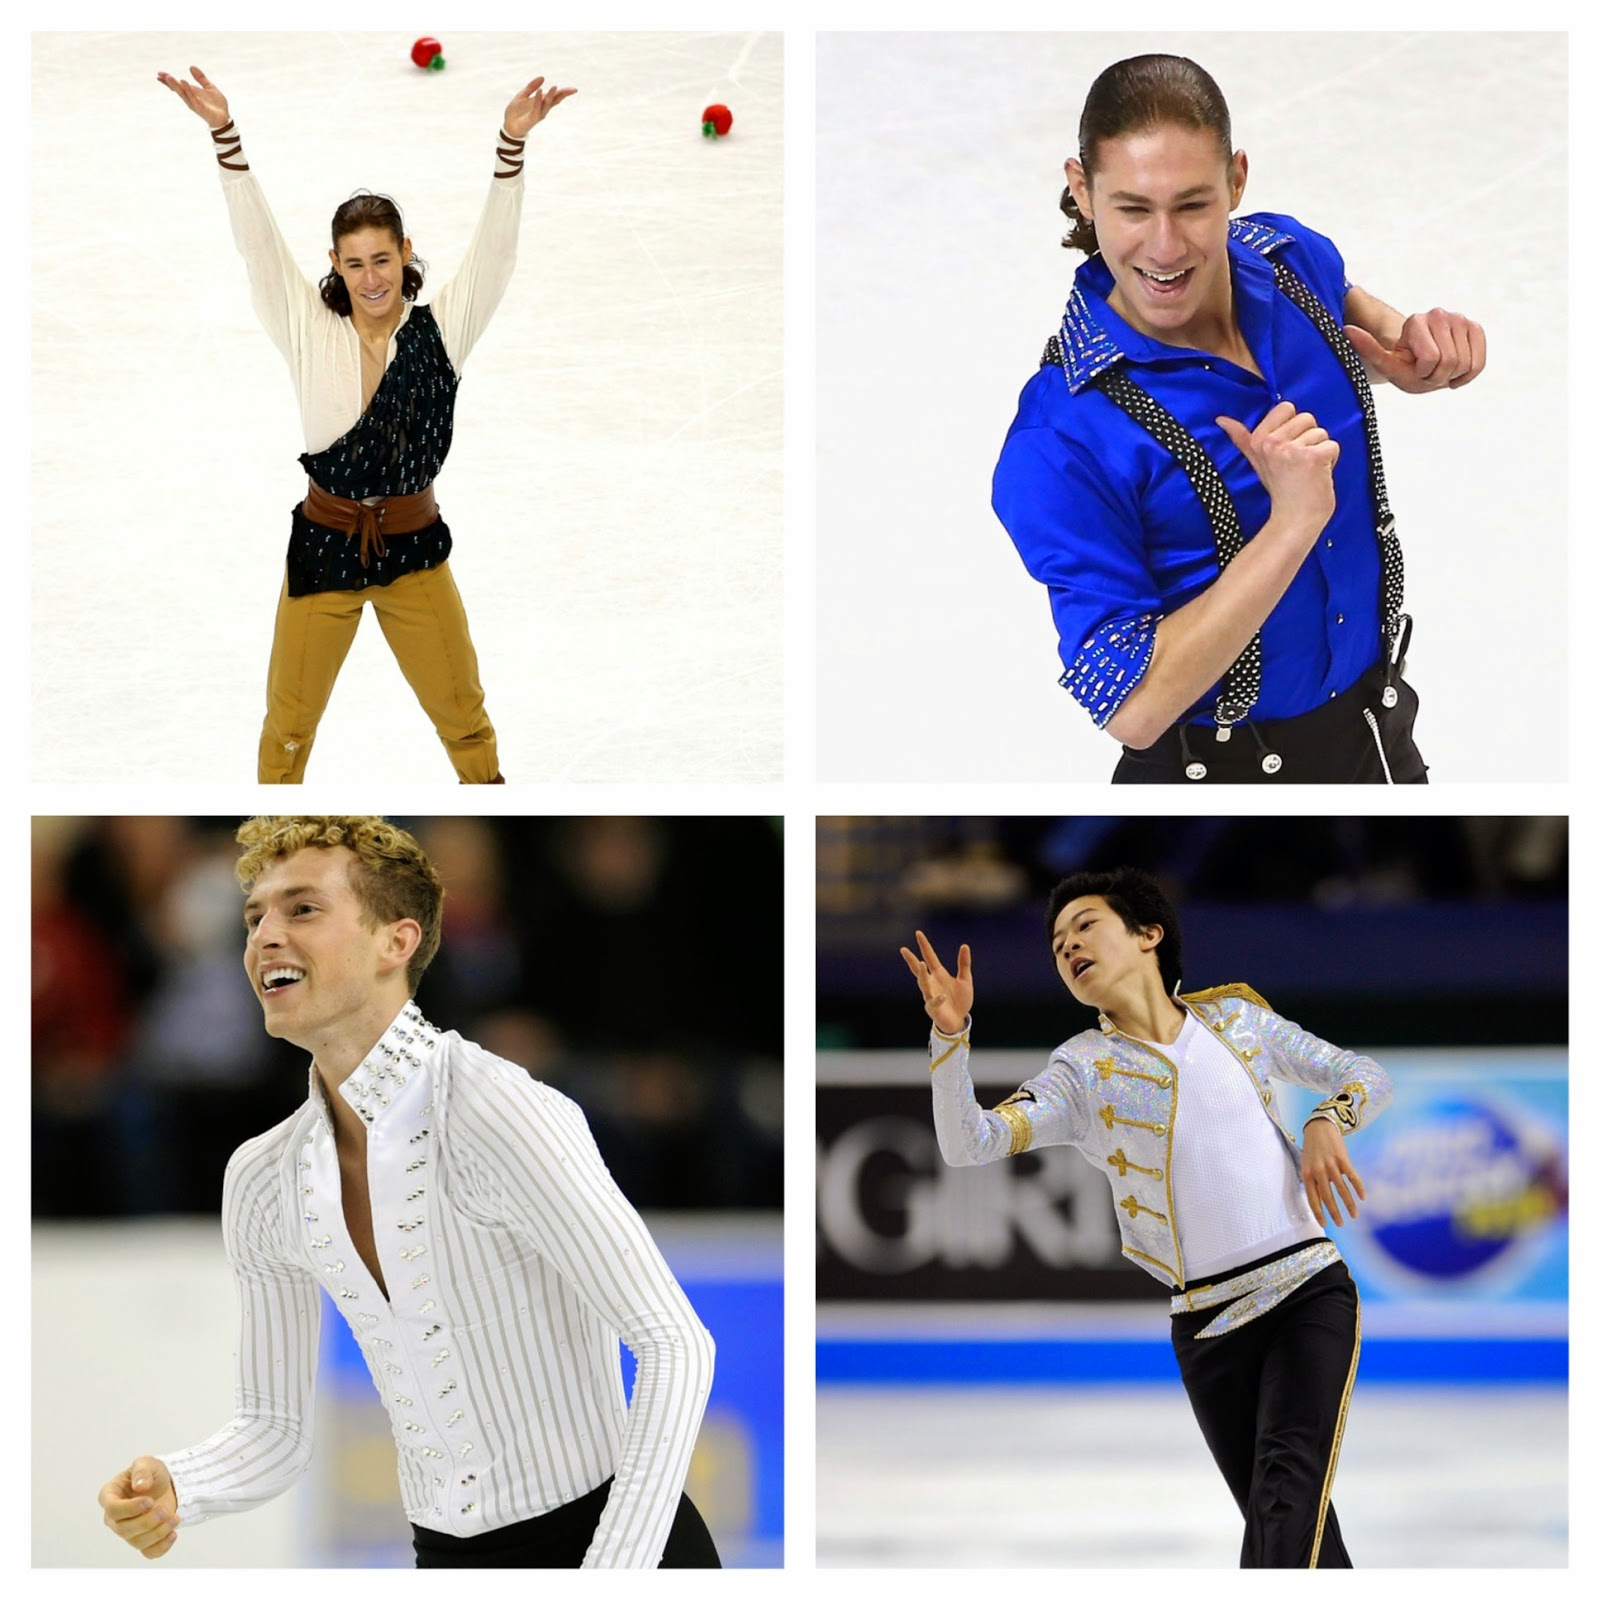 ice style 2015 us figure skating championships costumes oh boys men costume highlights on jason brown nathan chen and adam rippon 2015 prudential us figure skating championships